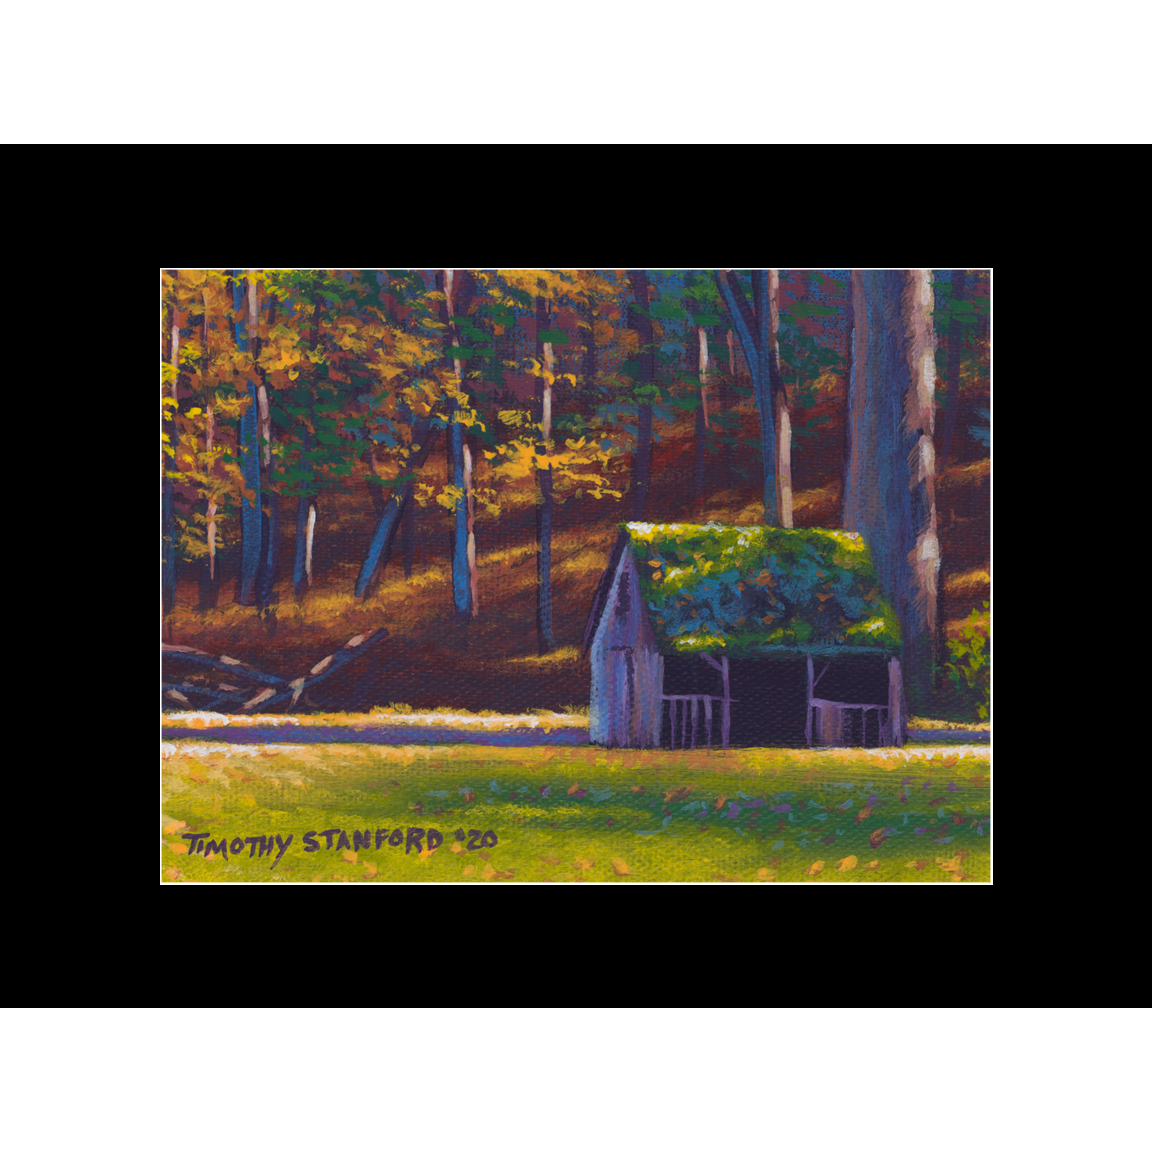 """Fine art matted print of Timothy Stanford's original acrylic painting """"Old Sheep Shed"""""""